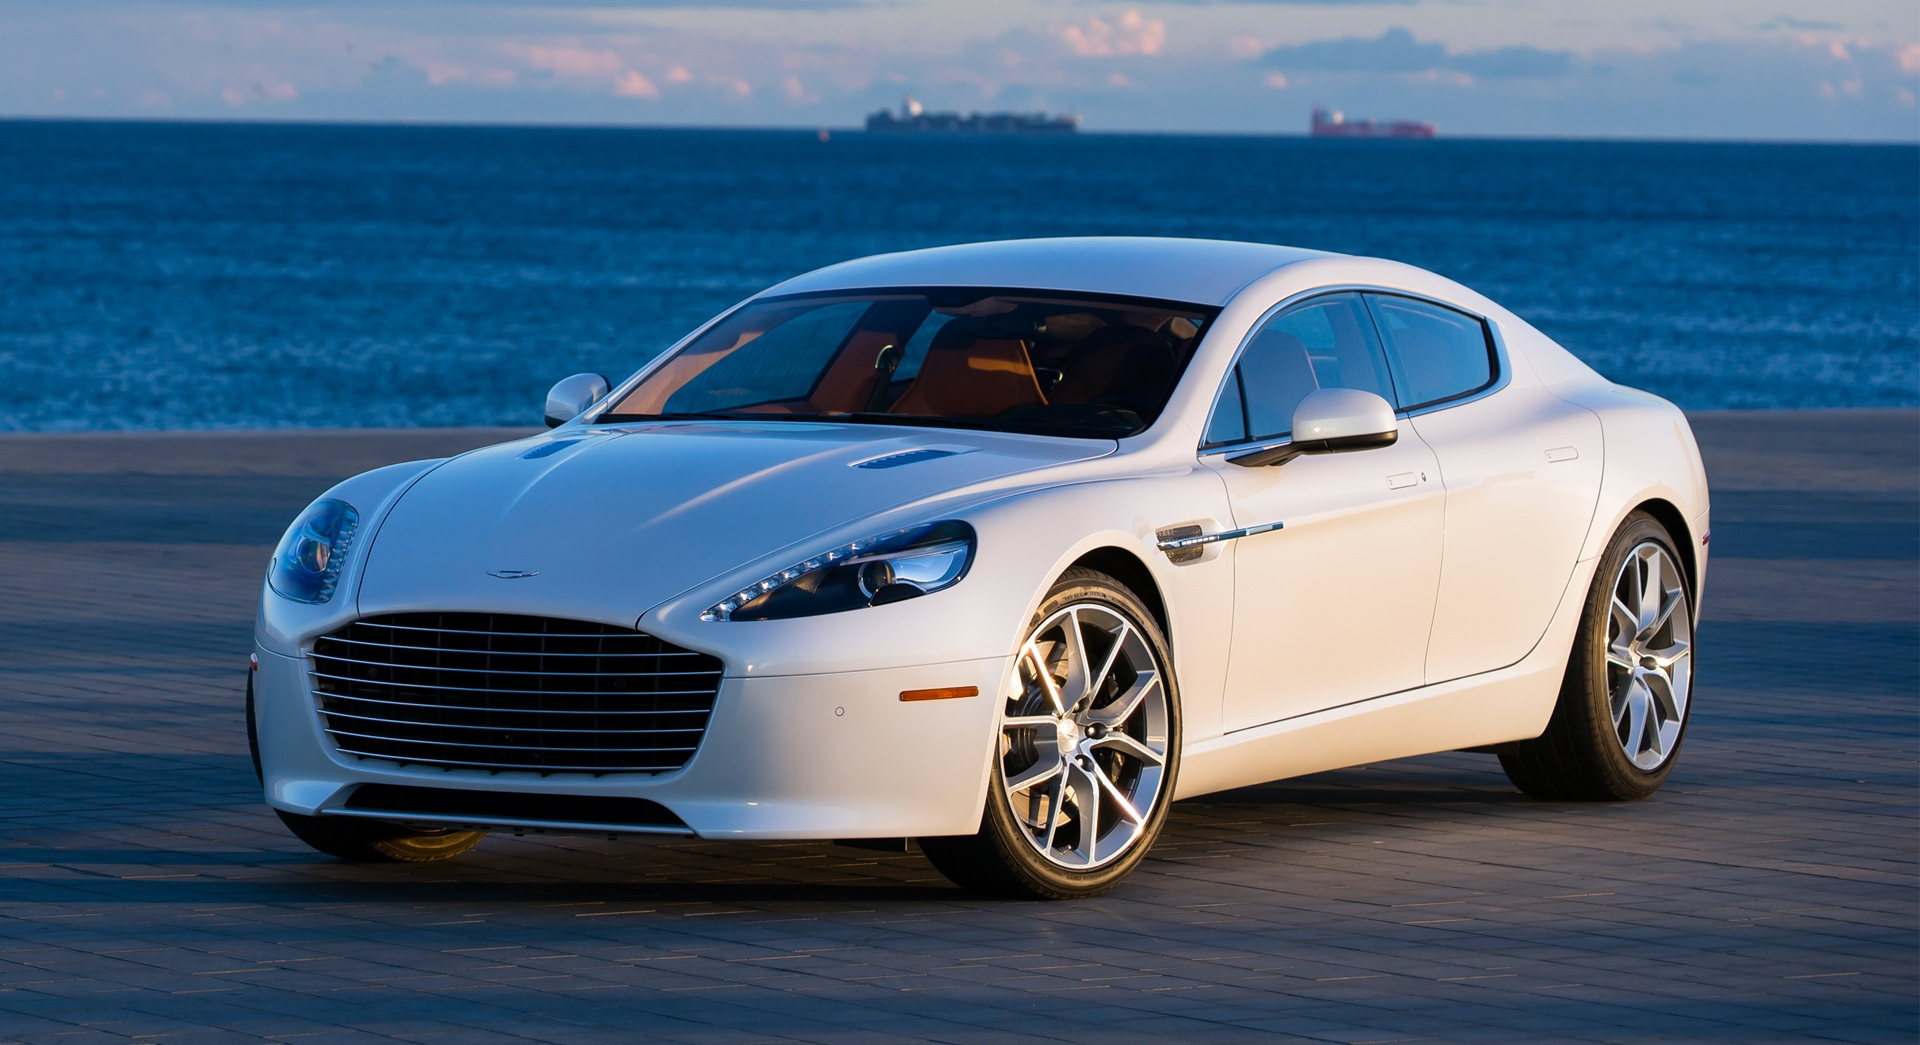 aston martin rapide beach hd desktop wallpapers 4k hd. Black Bedroom Furniture Sets. Home Design Ideas